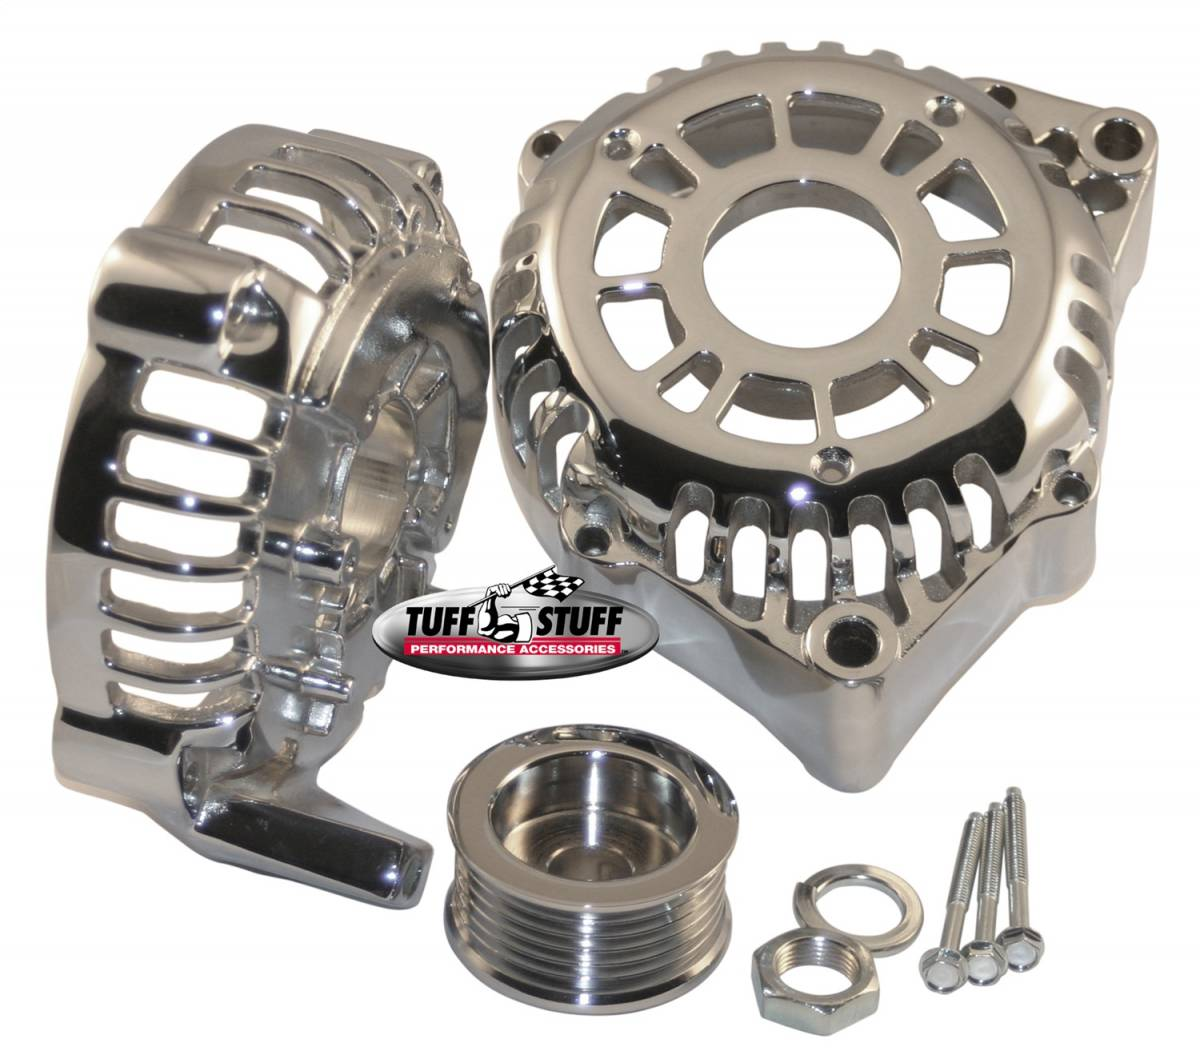 Tuff Stuff Performance - Alternator Case Kit Fits GM CS130D w/6 Groove Pulley And Tuff Stuff Alternator PN[8206] Incl. Front And Rear Housings/Fan/Pulley/Nut/Lockwashers/Thru Bolts Chrome Plated 7500L